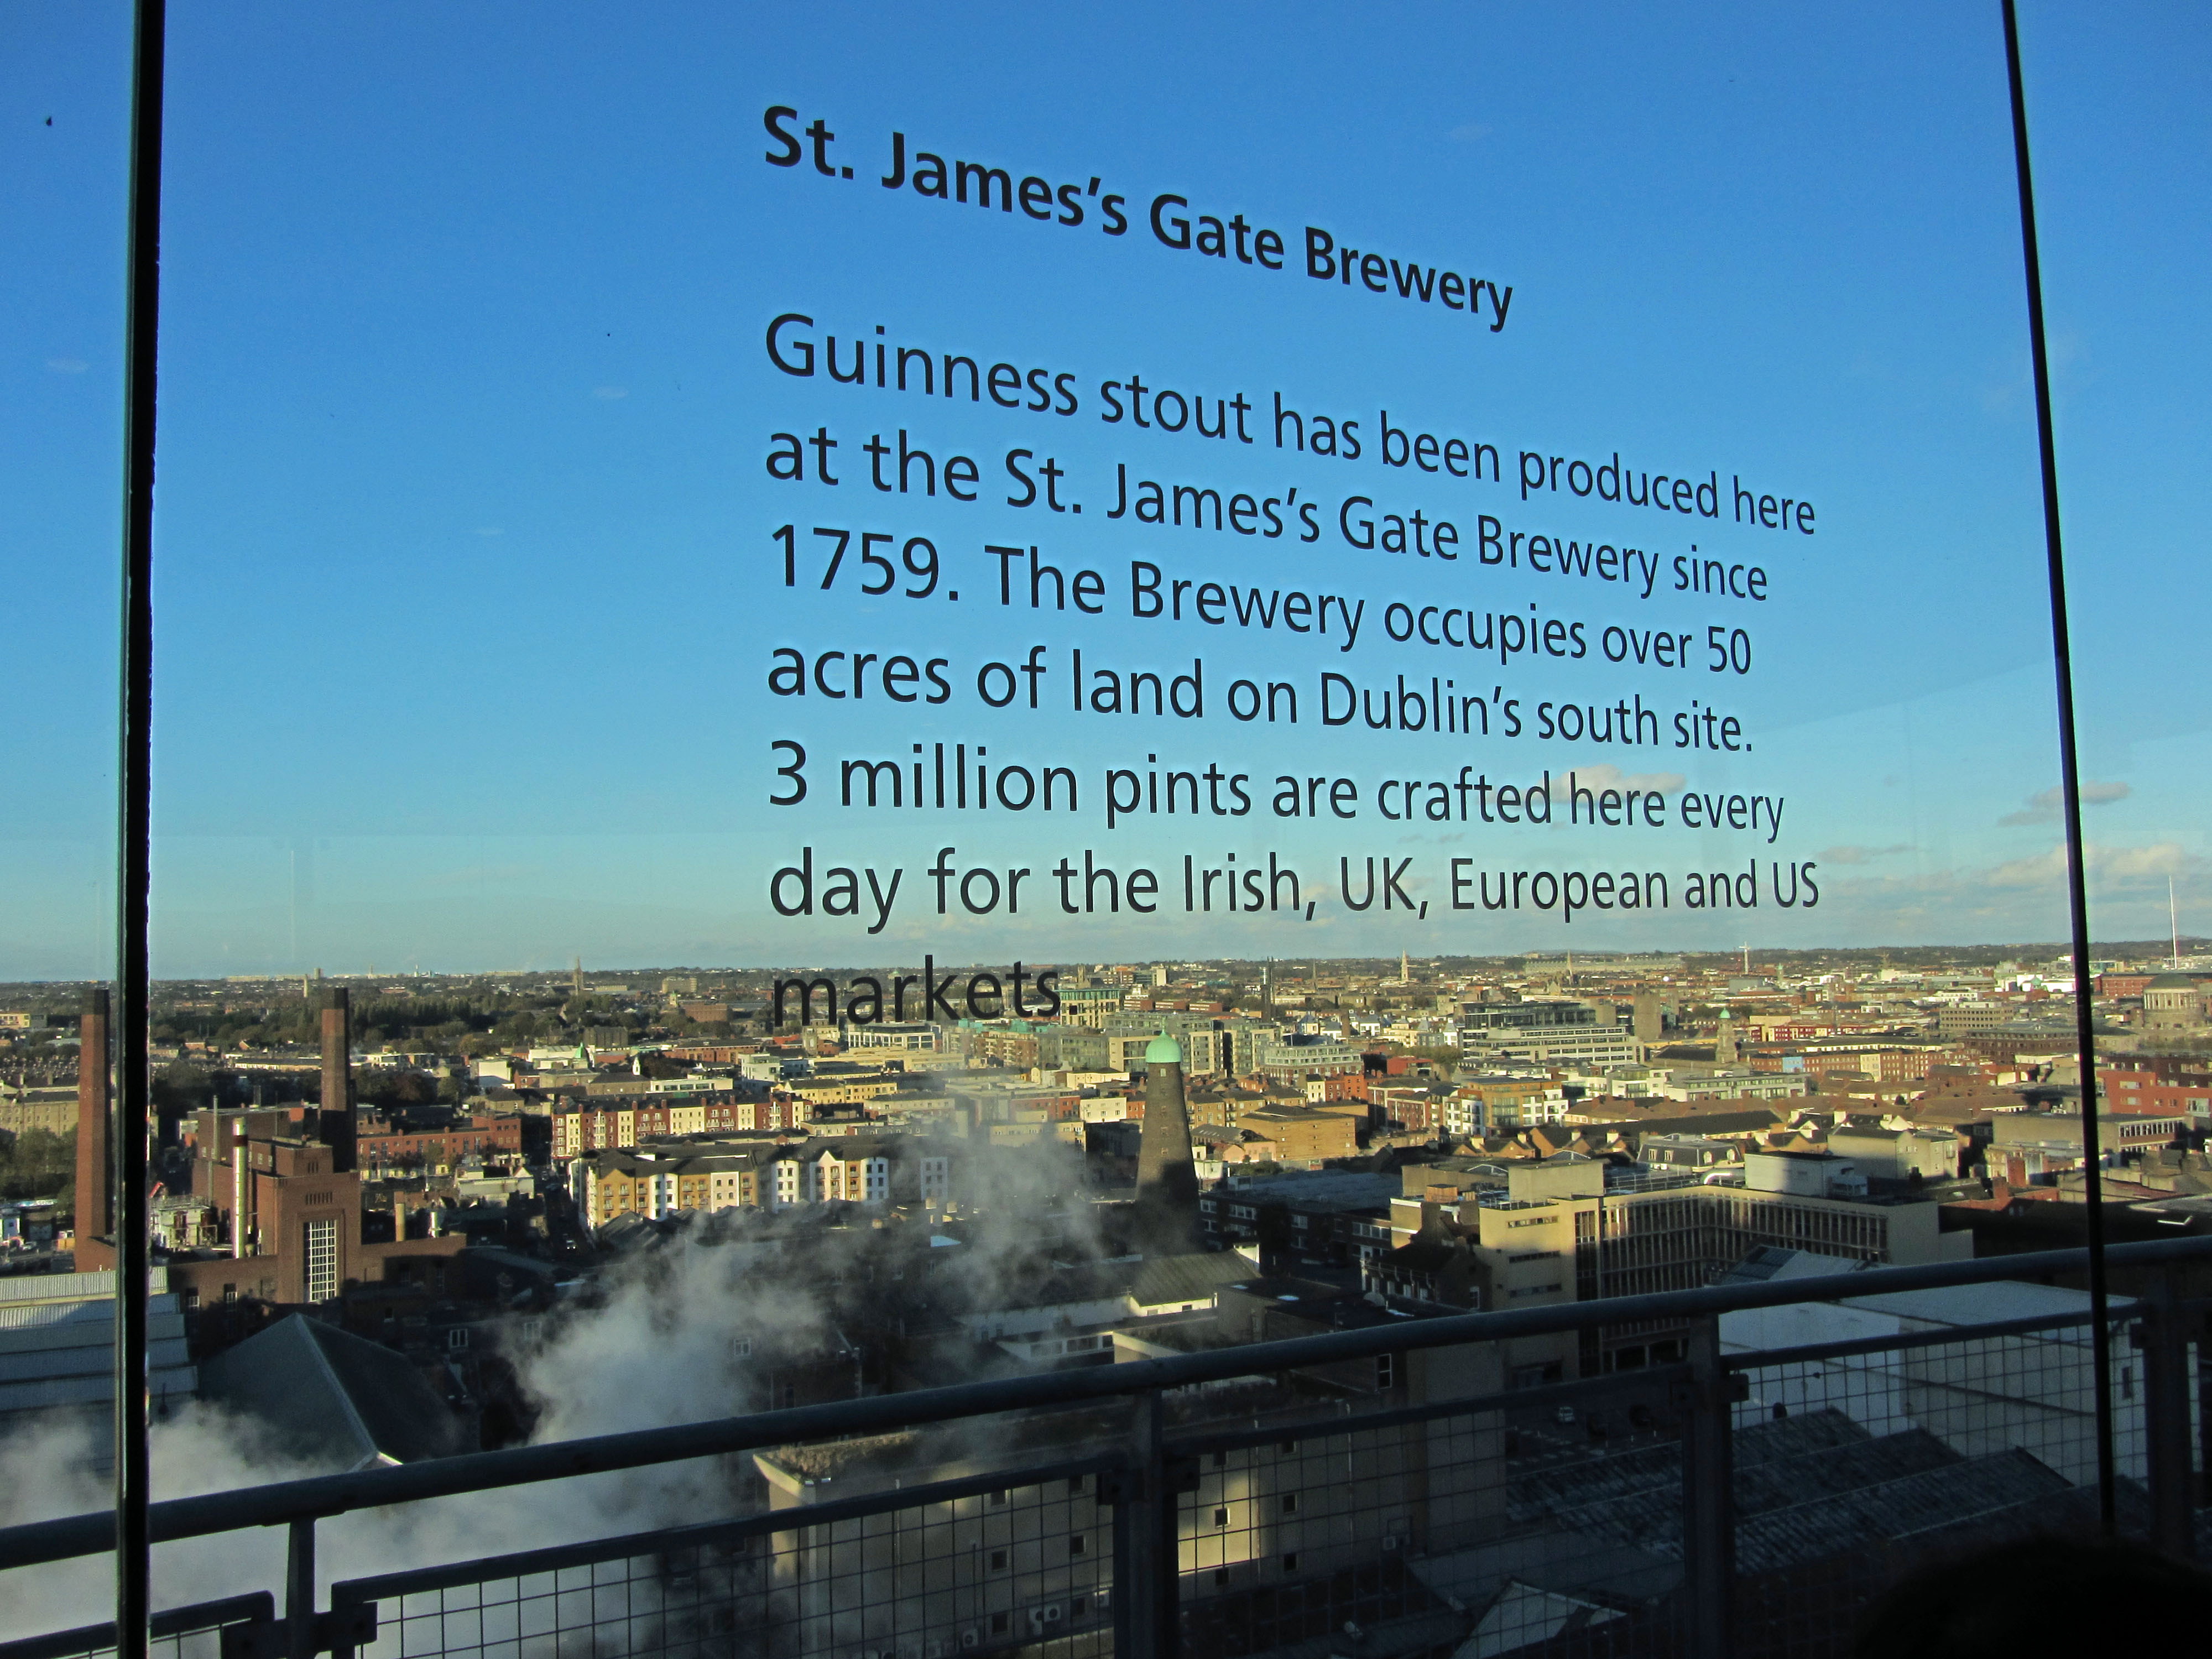 guiness-top-1.jpg